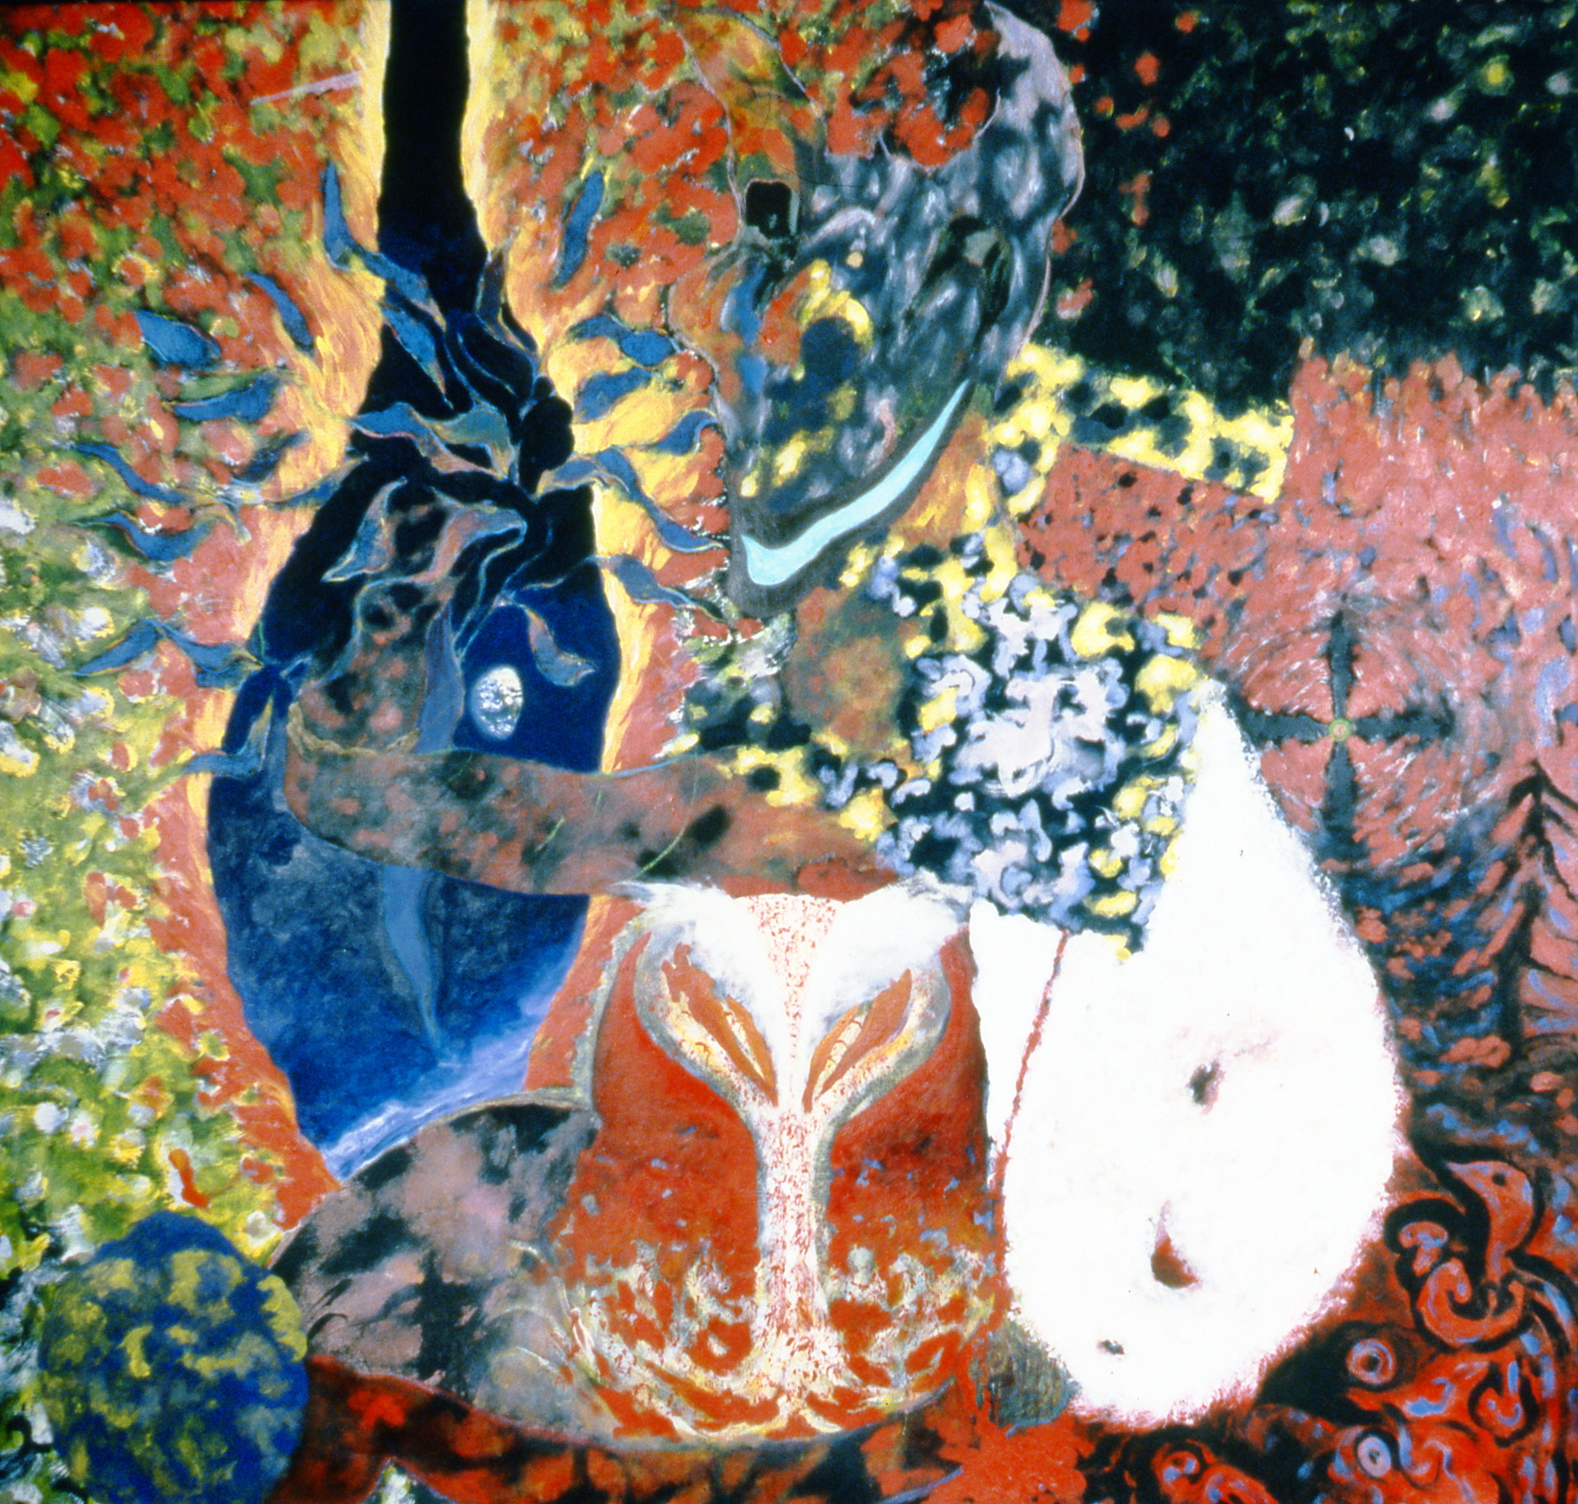 """Untitled (March 1986), 1986, Rients Van Goudoever, acrylic on canvas, 69"""" x 71"""", 1999.01.01, gift of the artist"""